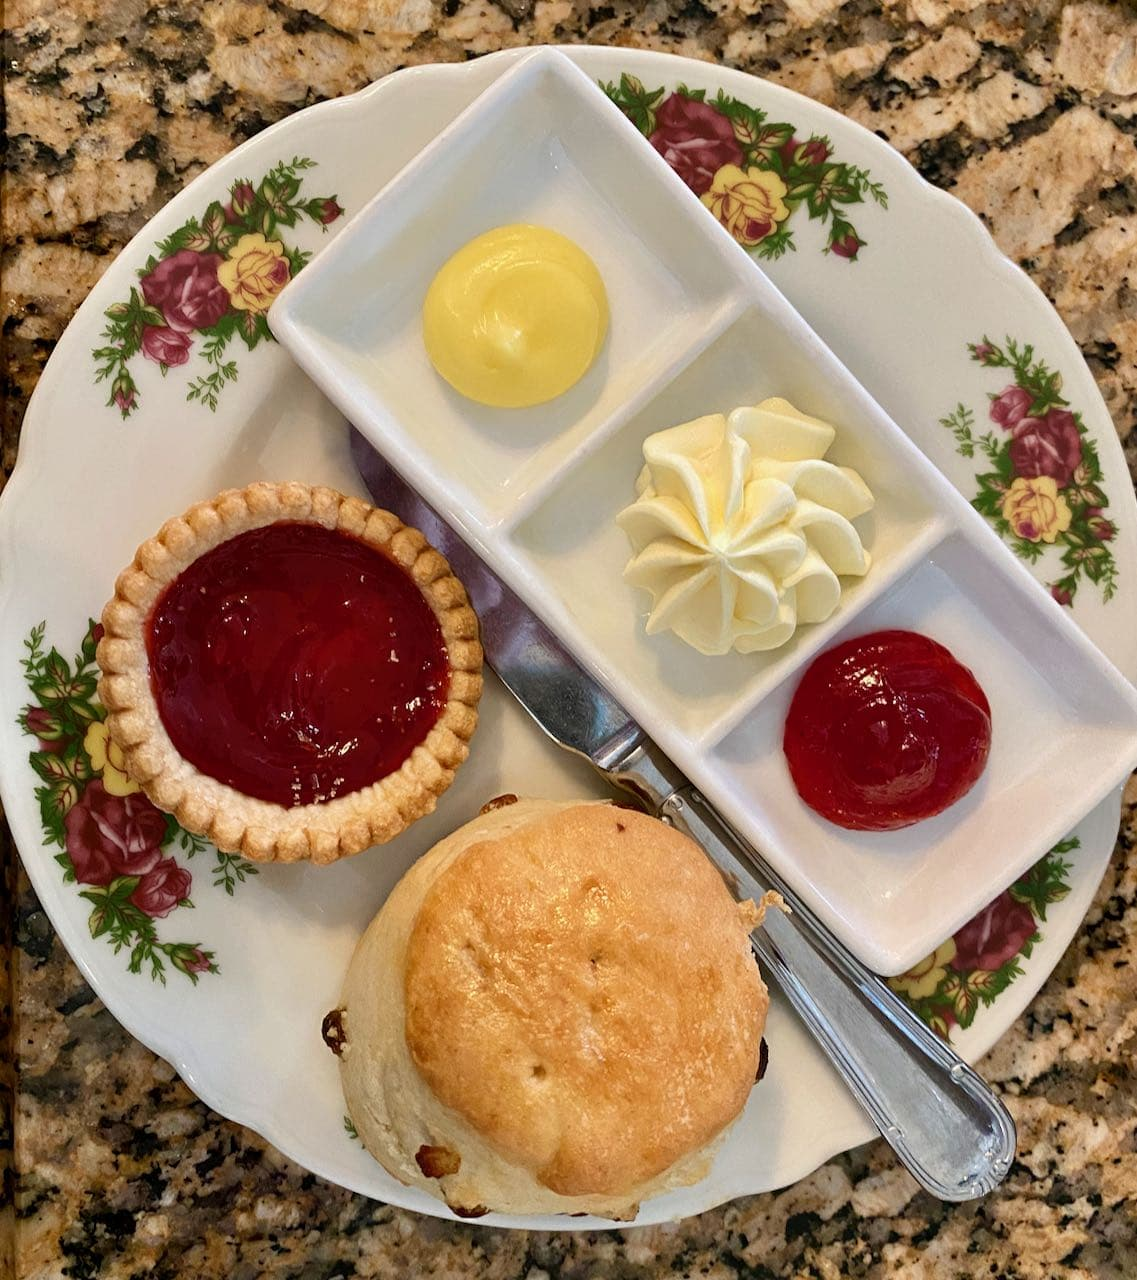 Scones Clotted Cream Afternoon Tea Disney's Grand Floridian Resort & Spa Orlando review